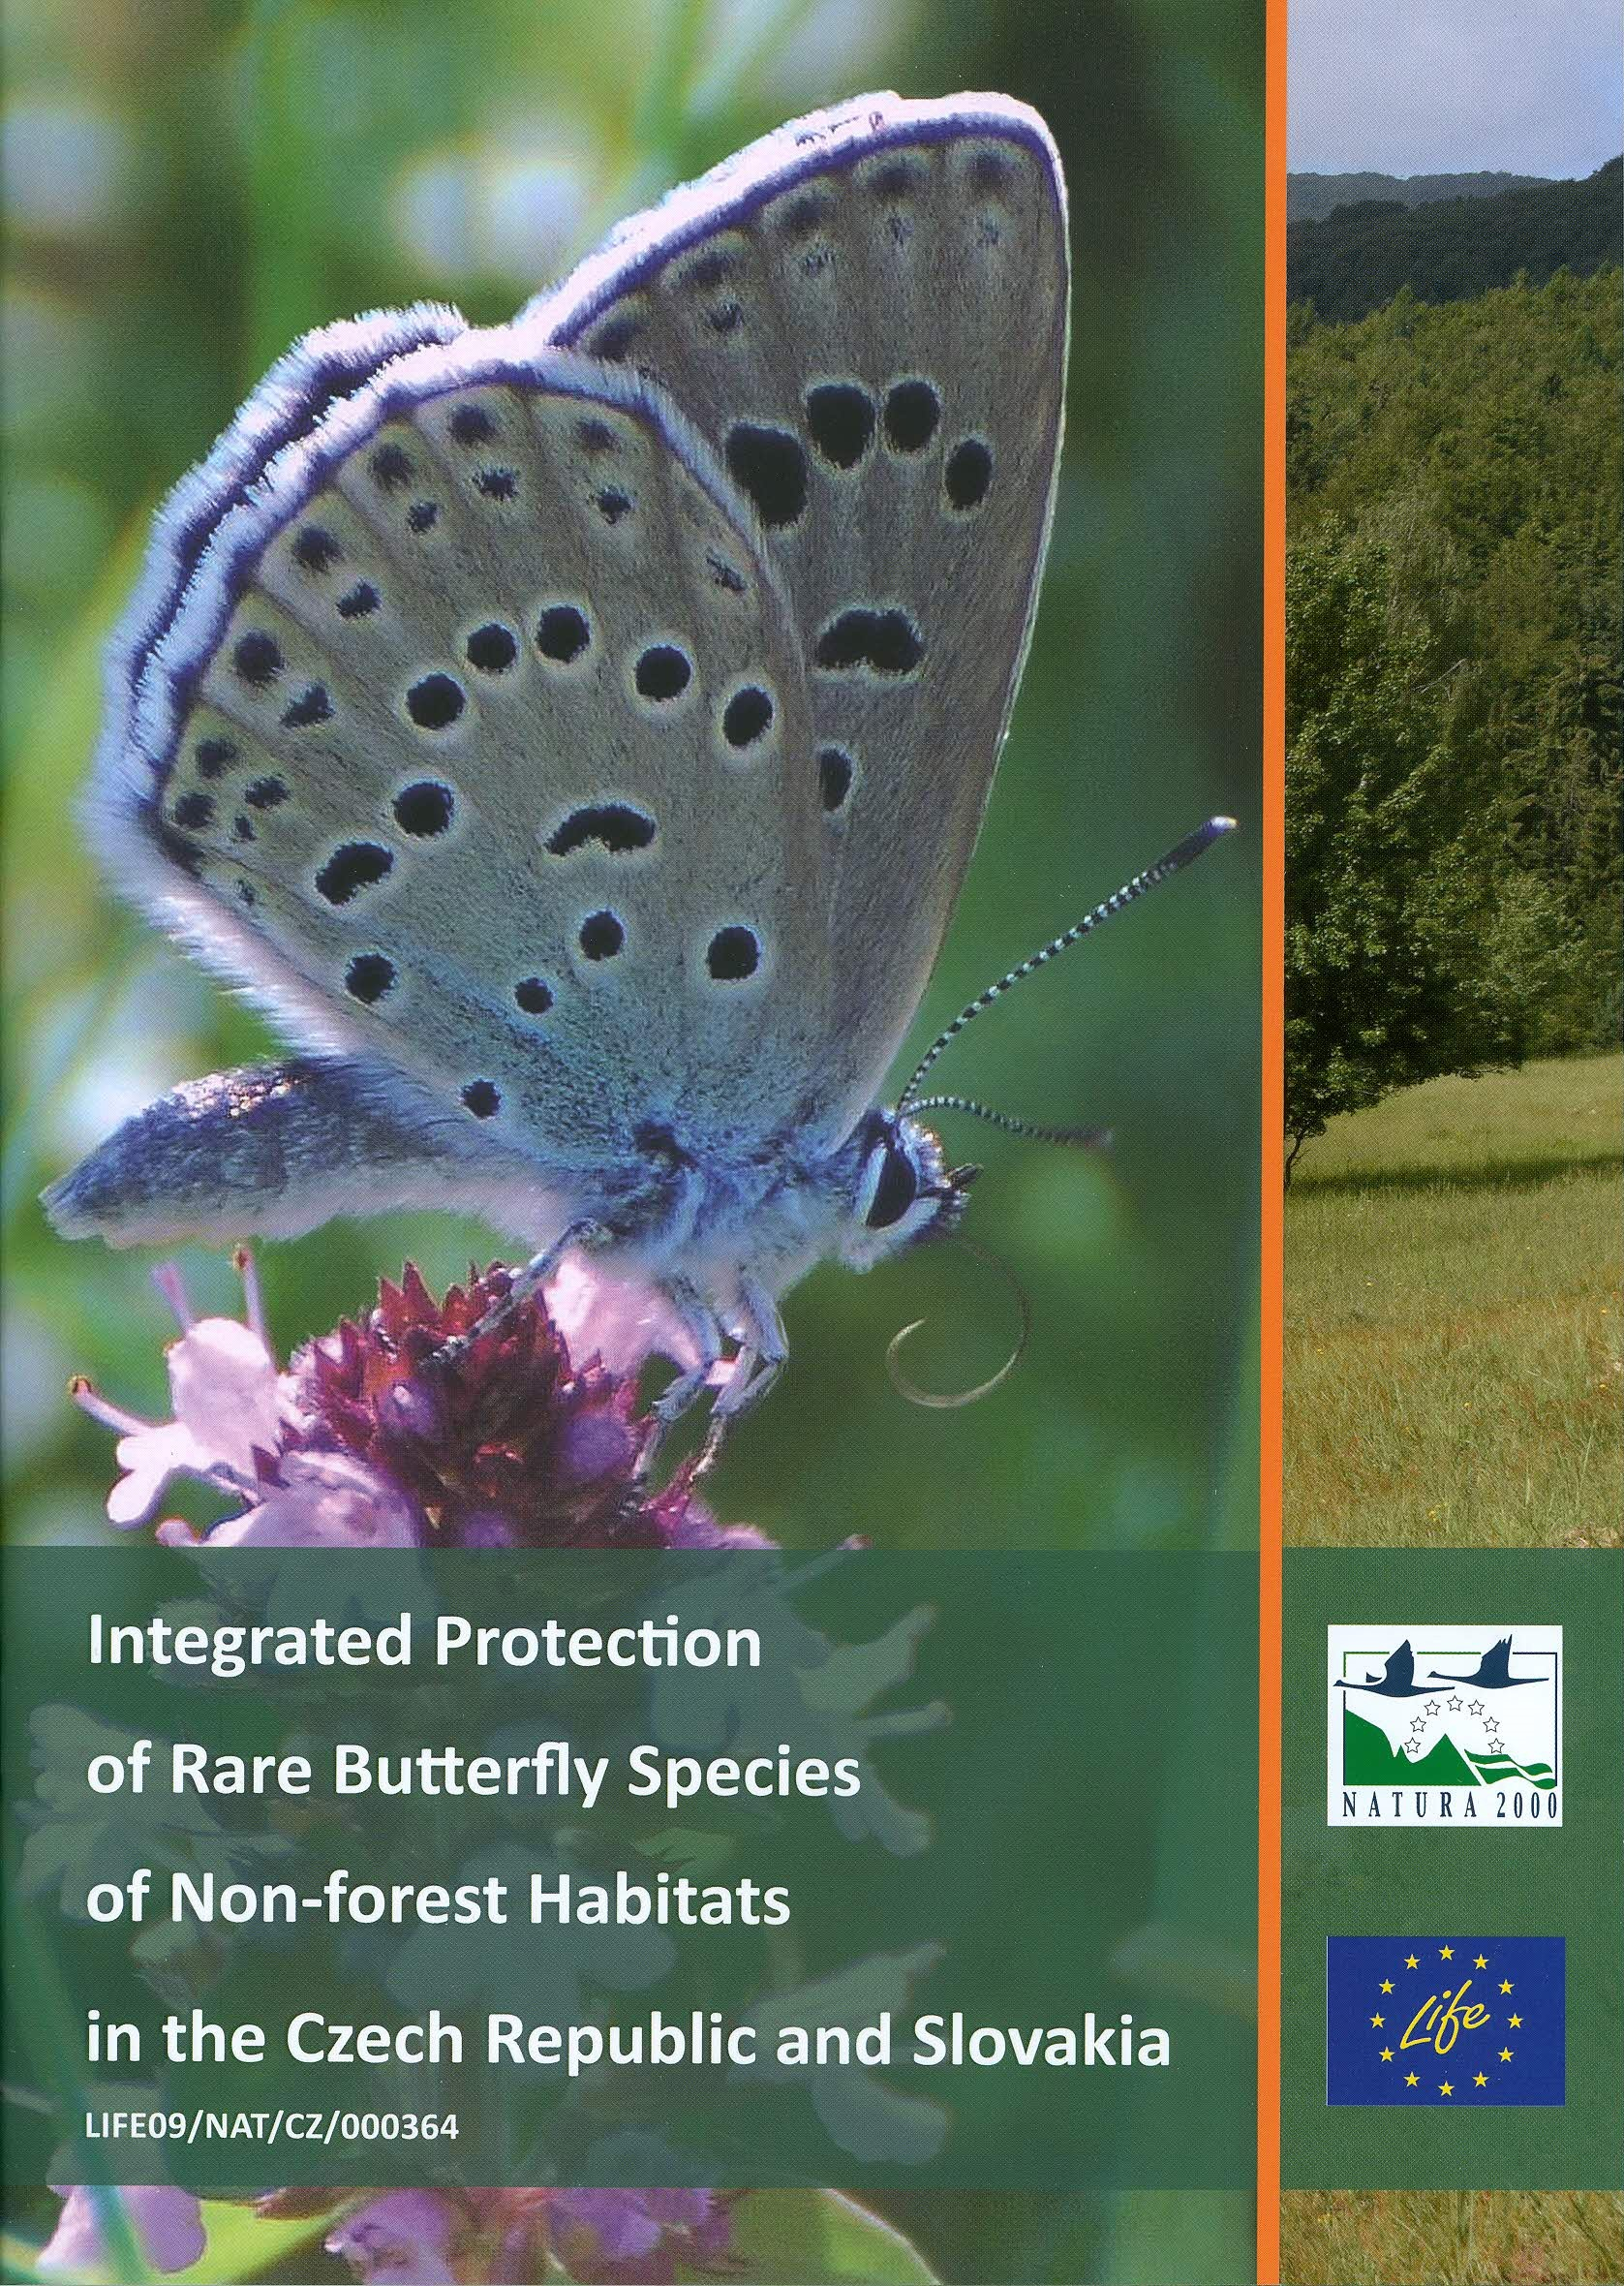 Integrated Protection of Rare Butterfly Species of Non-forest Habitats - CZ, SK